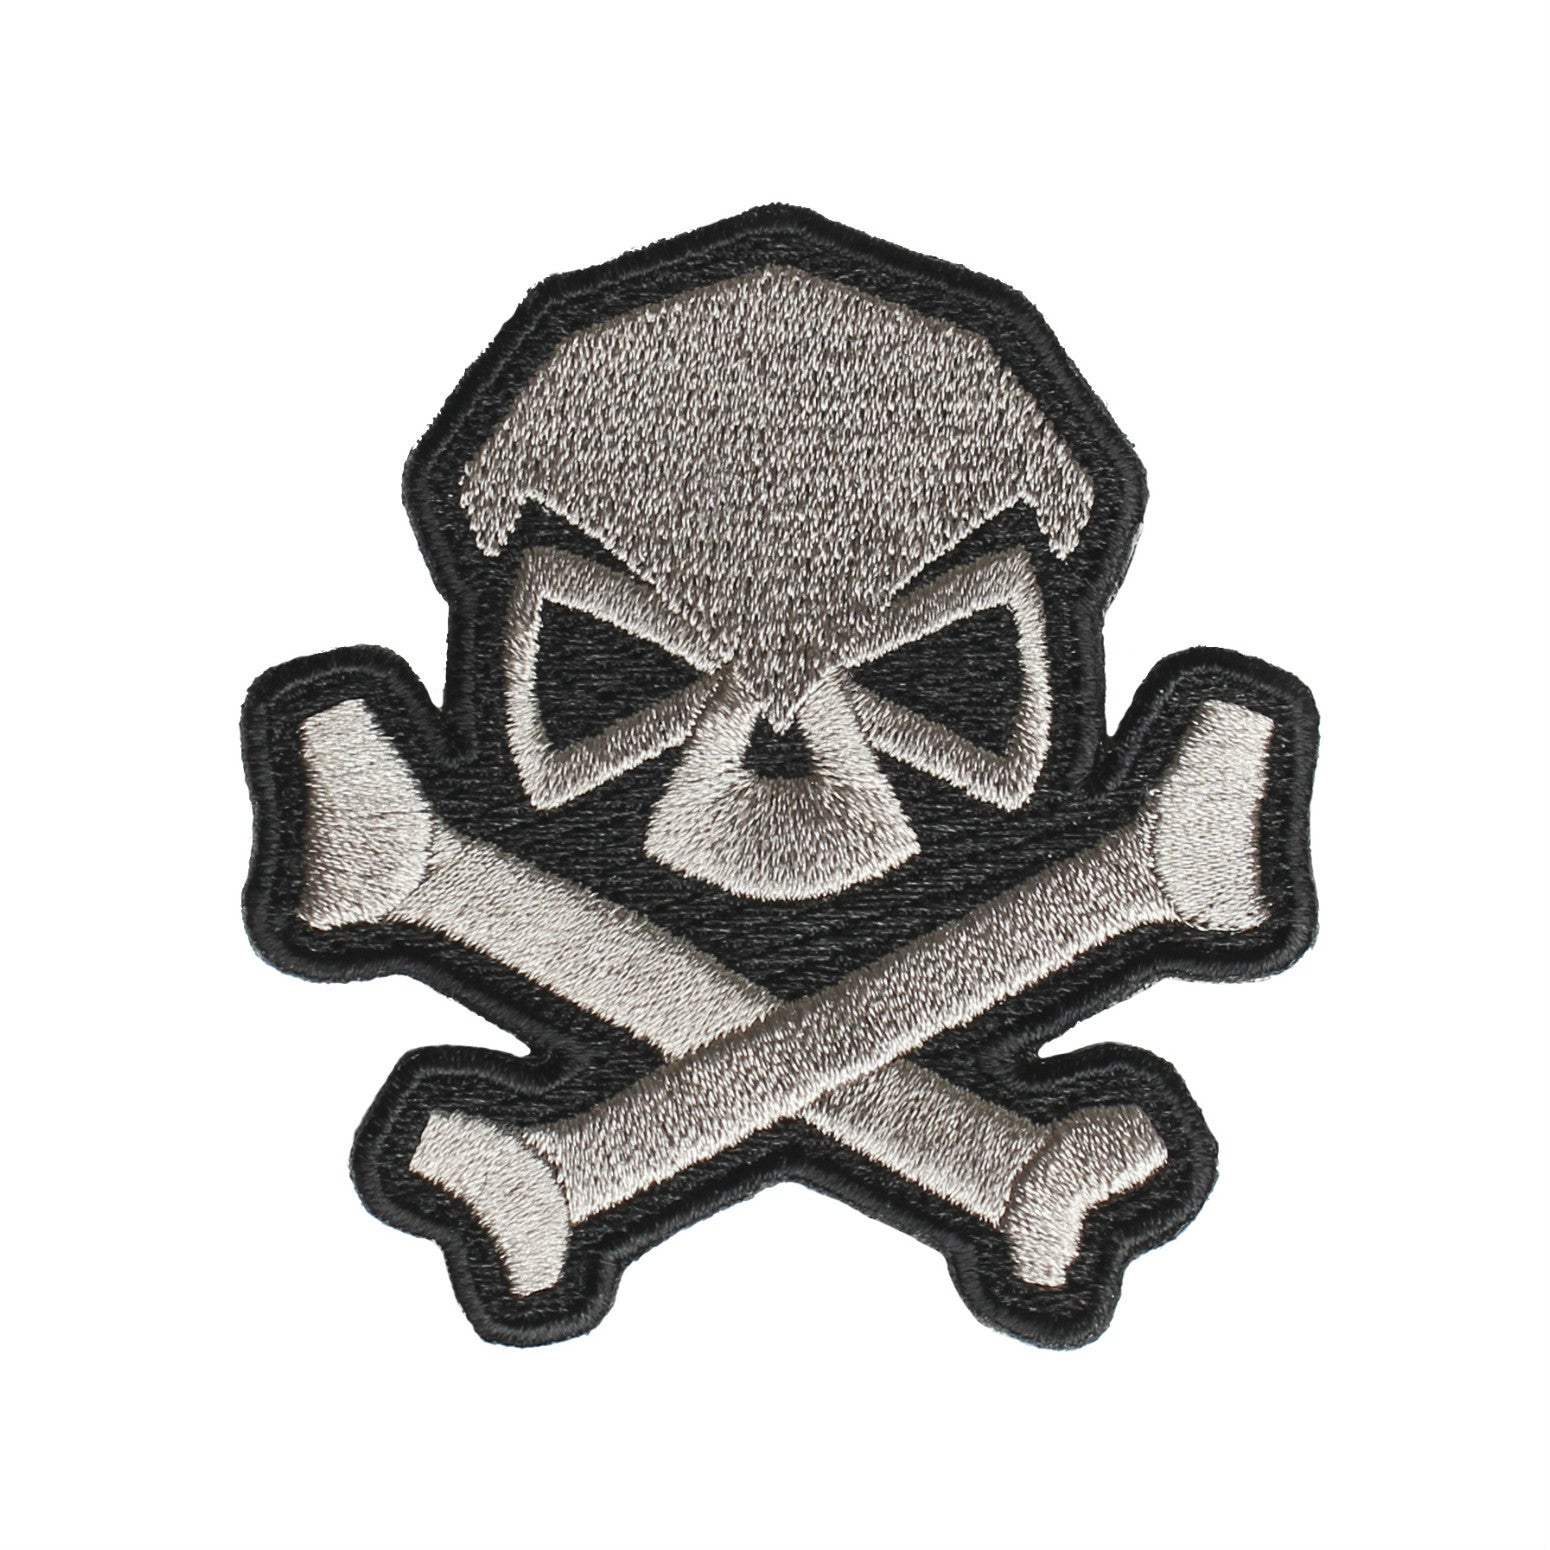 Skull & Bones Patch - Grey - Patches - Pipe Hitters Union